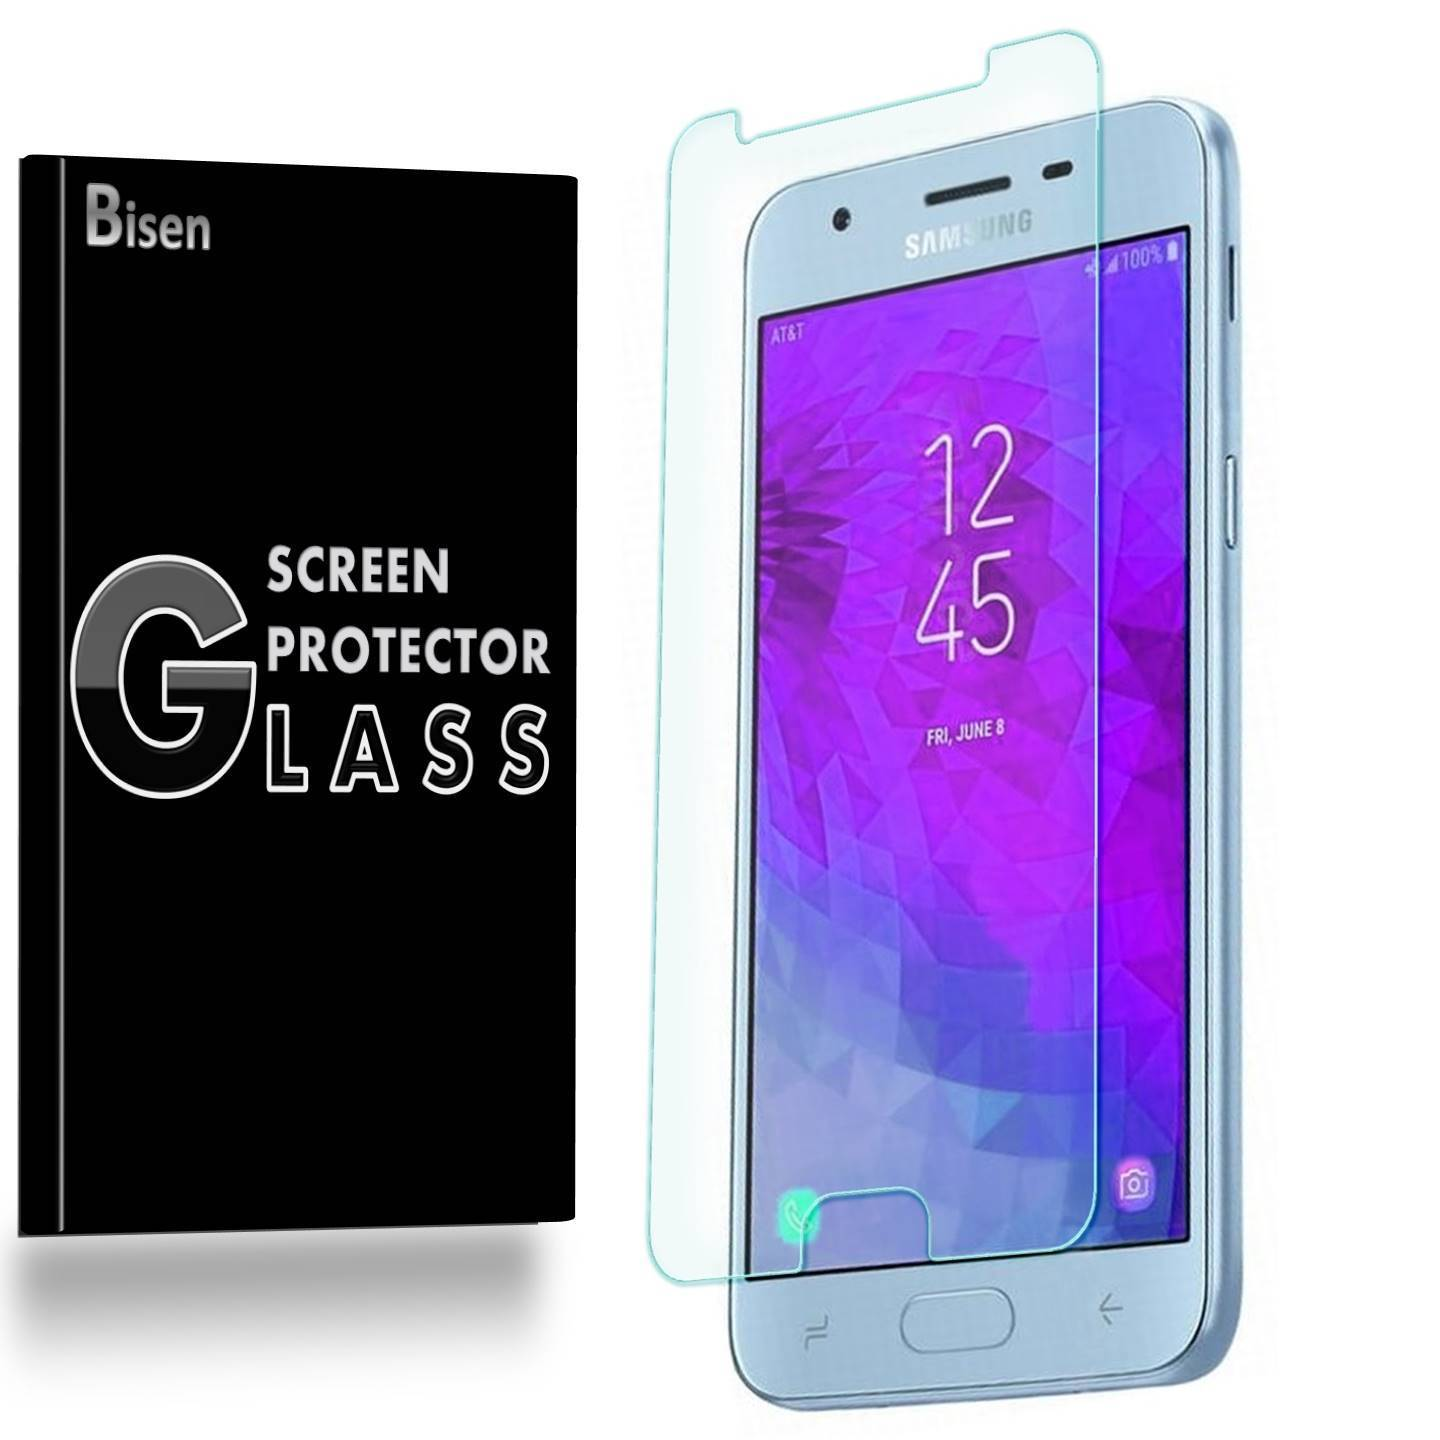 Samsung Galaxy J3 (2018) [3-Pack BISEN] Screen Protector Tempered Glass, 9H Hardness, Anti-Scratch, Anti-Shock, Bubble Free, Shatterproof